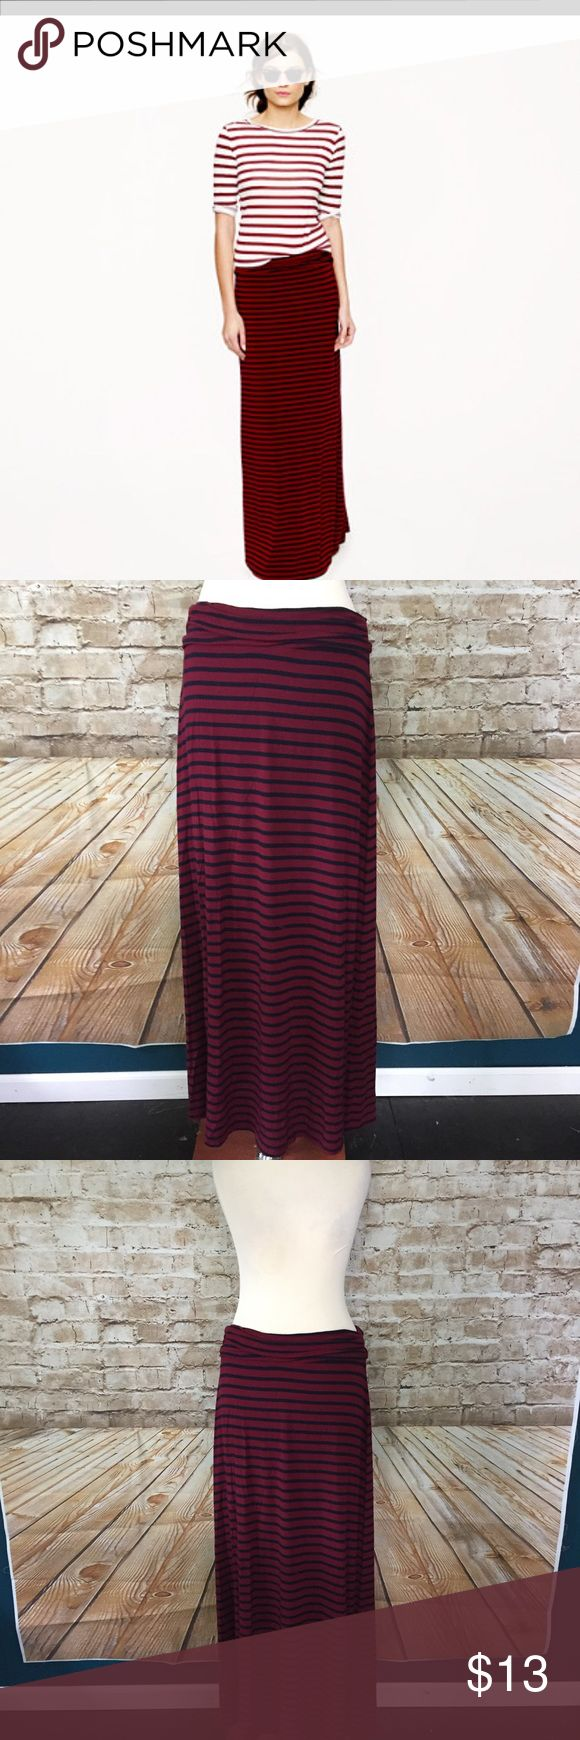 J. Crew Stripe Jersey Red Navy Maxi Skirt Small J. Crew Stripe Jersey Red Navy Maxi Skirt Small  Retail $75  Rayon/spandex  No flaws, has been worn and washed a few times  Soft and stretchy  Machine wash   Measurements in inches when laid flat:  Waist: 15  Hips: 17  Length: 40 J. Crew Skirts Maxi